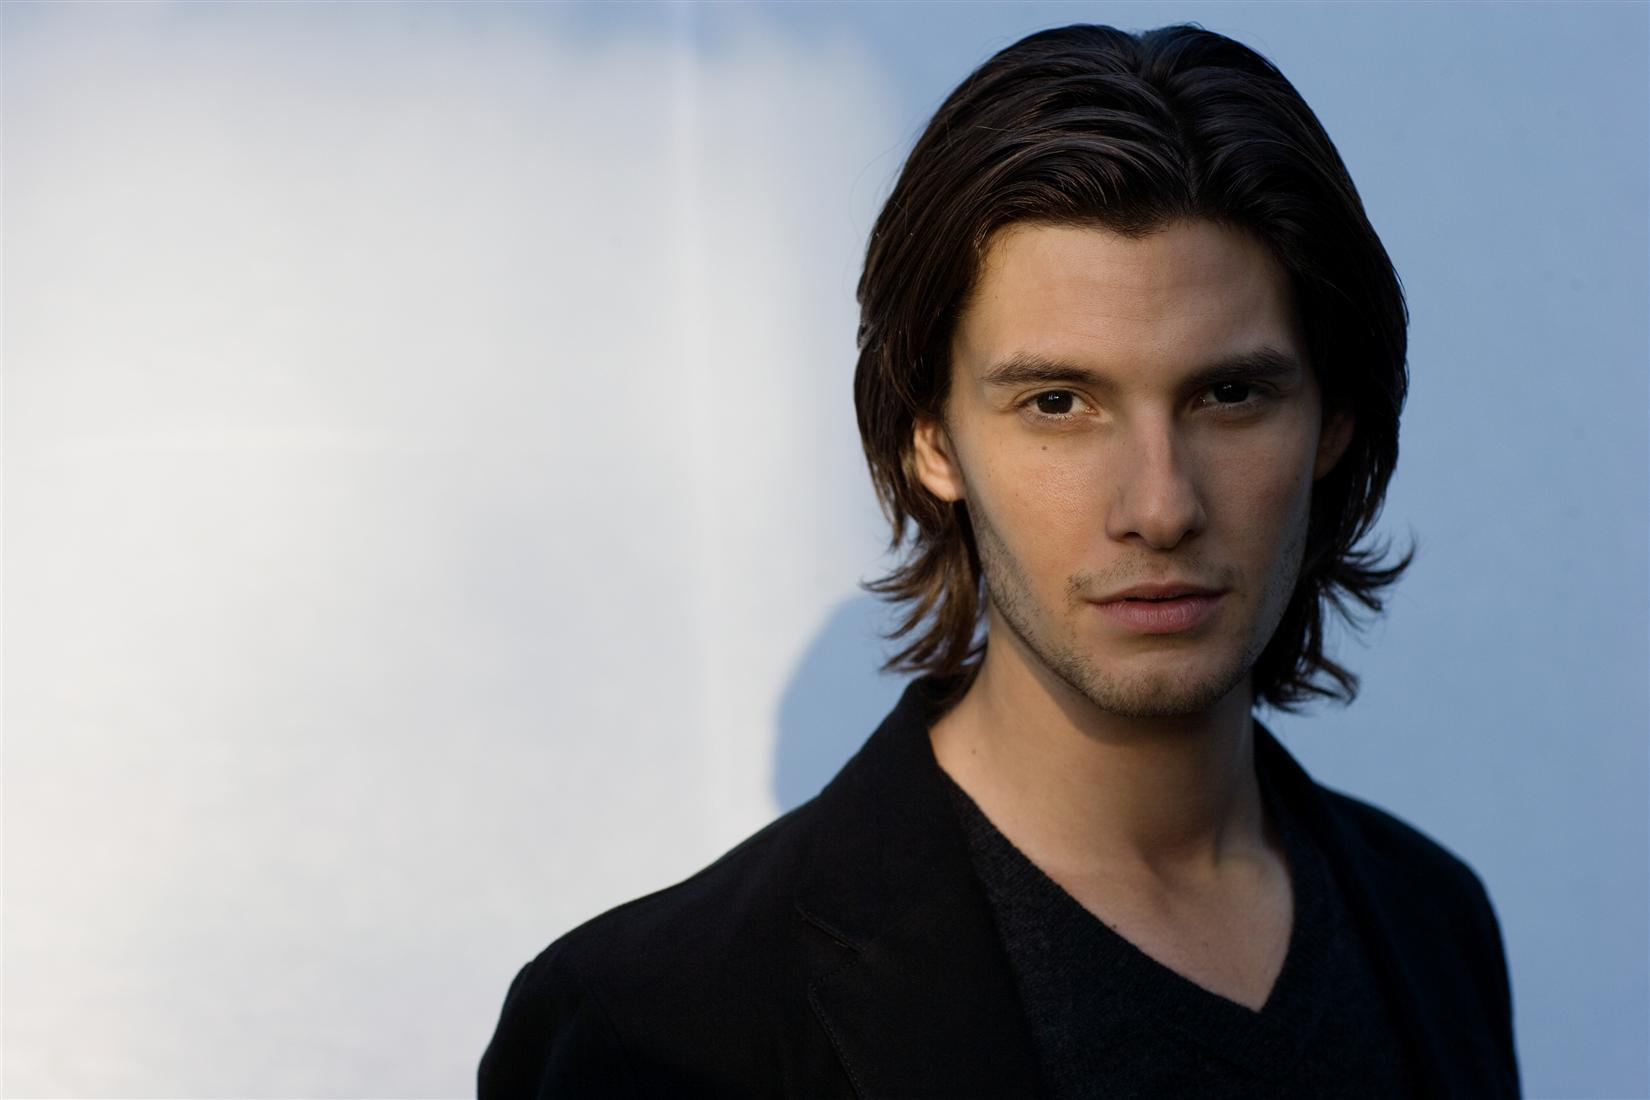 ben barnes 2016ben barnes gif, ben barnes 2016, ben barnes tumblr, ben barnes vk, ben barnes interview, ben barnes gif hunt, ben barnes photoshoot, ben barnes 2017, ben barnes films, ben barnes and amanda seyfried, ben barnes wikipedia, ben barnes height, ben barnes png, ben barnes twitter, ben barnes young, ben barnes gif tumblr, ben barnes long hair, ben barnes southbound, ben barnes fan, ben barnes was/were